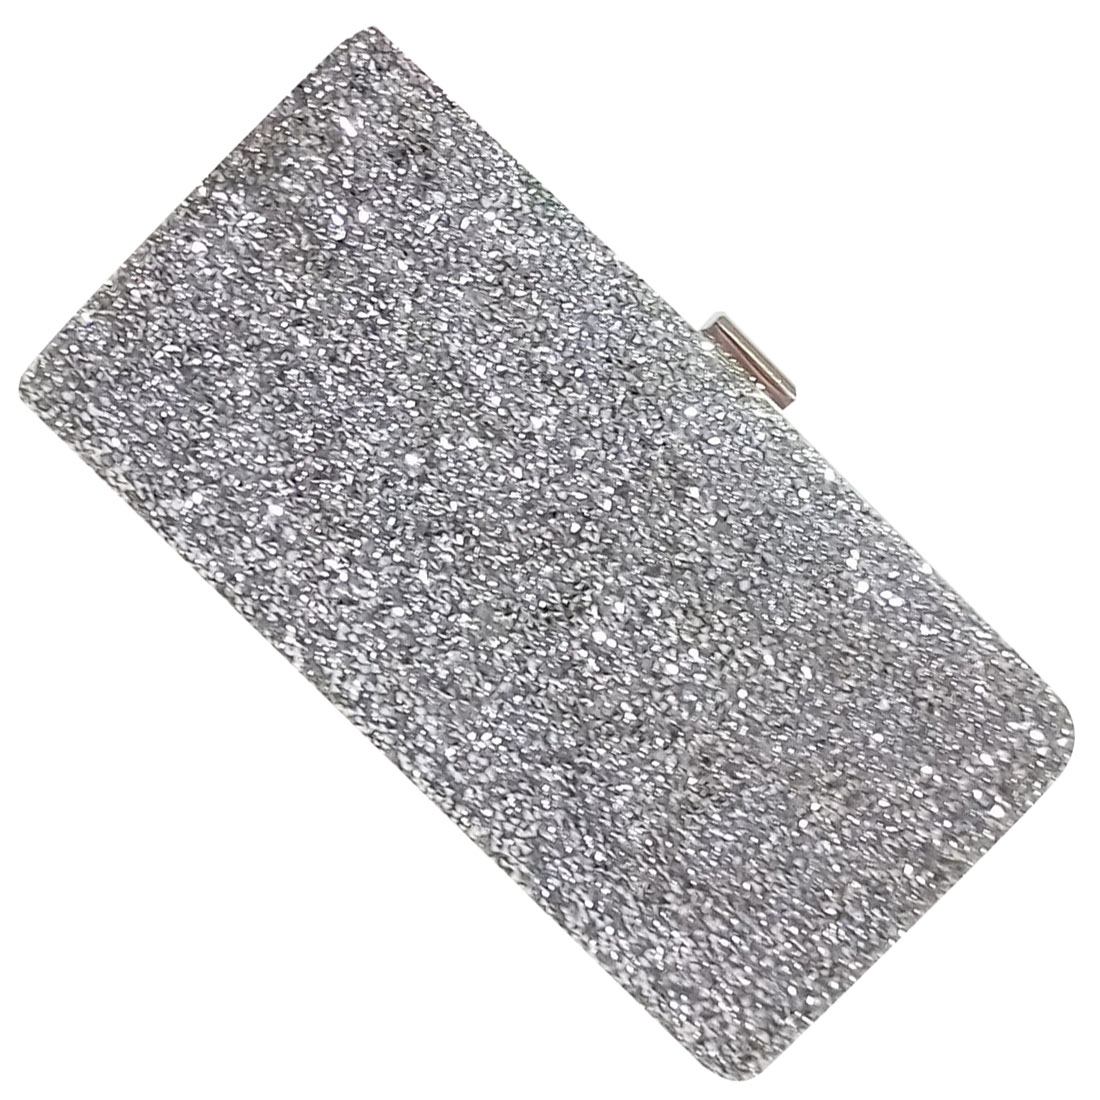 FGGS-Woman Evening bag Women Diamond created Rhinestone Clutch Crystal Day Clutch Wallet Wedding Purse Party Banquet, Silver woman evening bag women diamond rhinestone clutches crystal day clutch wallet wedding purse party banquet evening bags classic